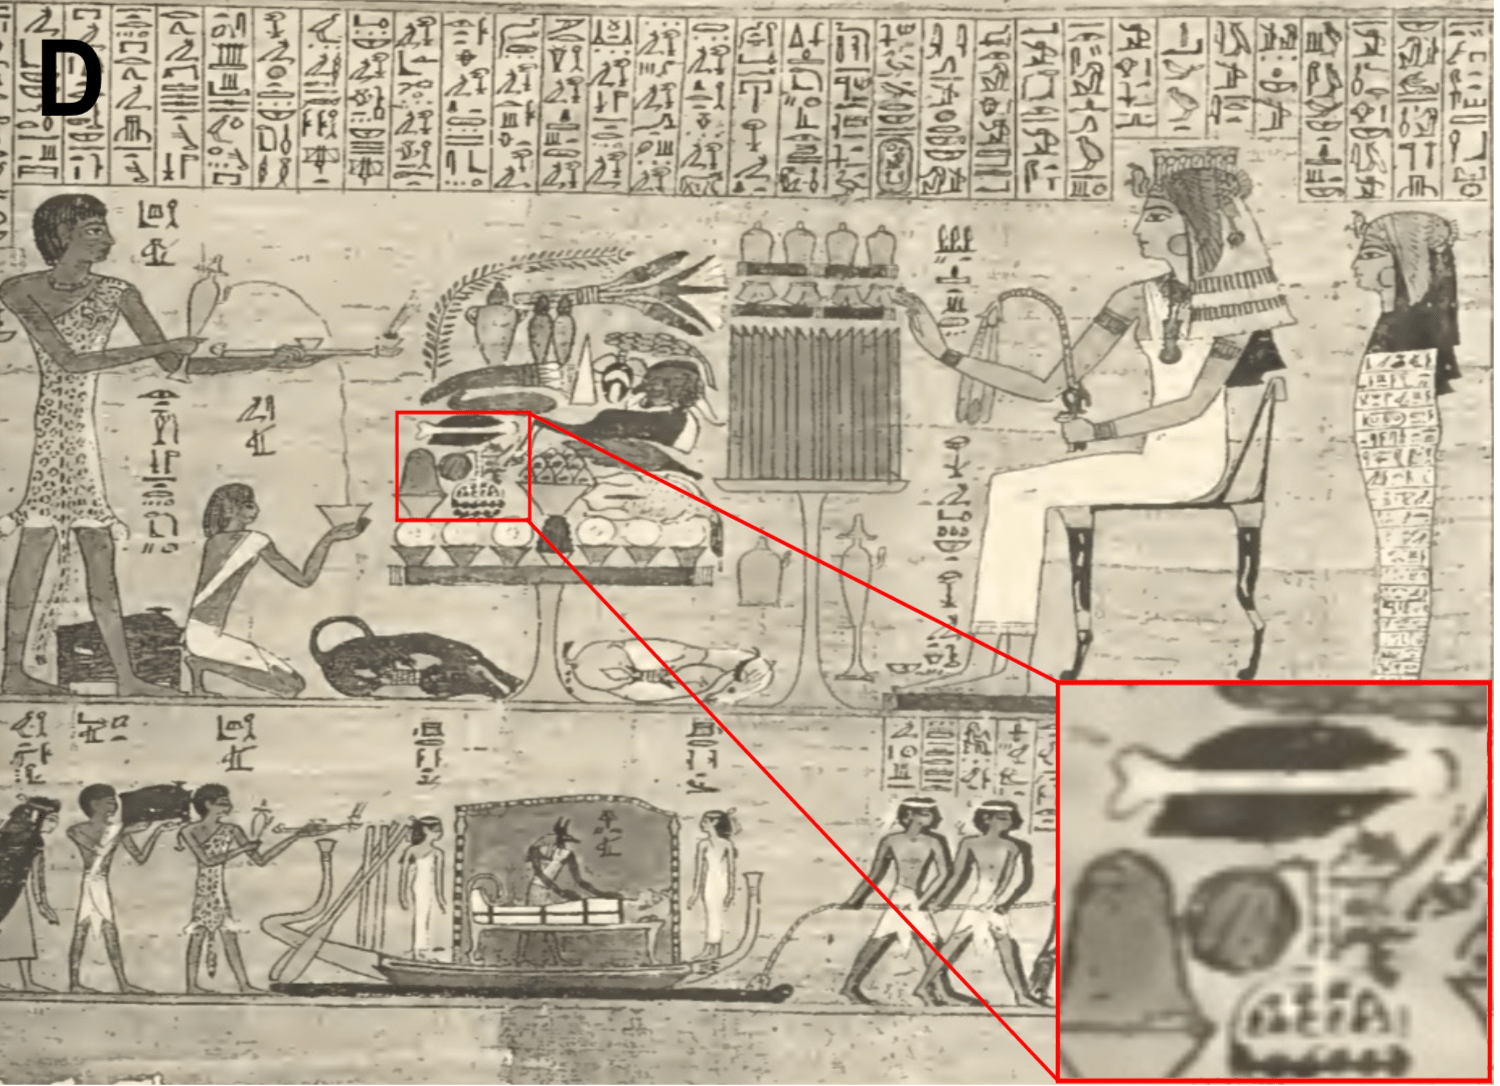 an egyptian painting with columns of hieroglyphics, multiple people standing and kneeling with a queen and sarcophogas. in the center is large table filled with food, including a round watermelon-like item, which the graphic has circled in red